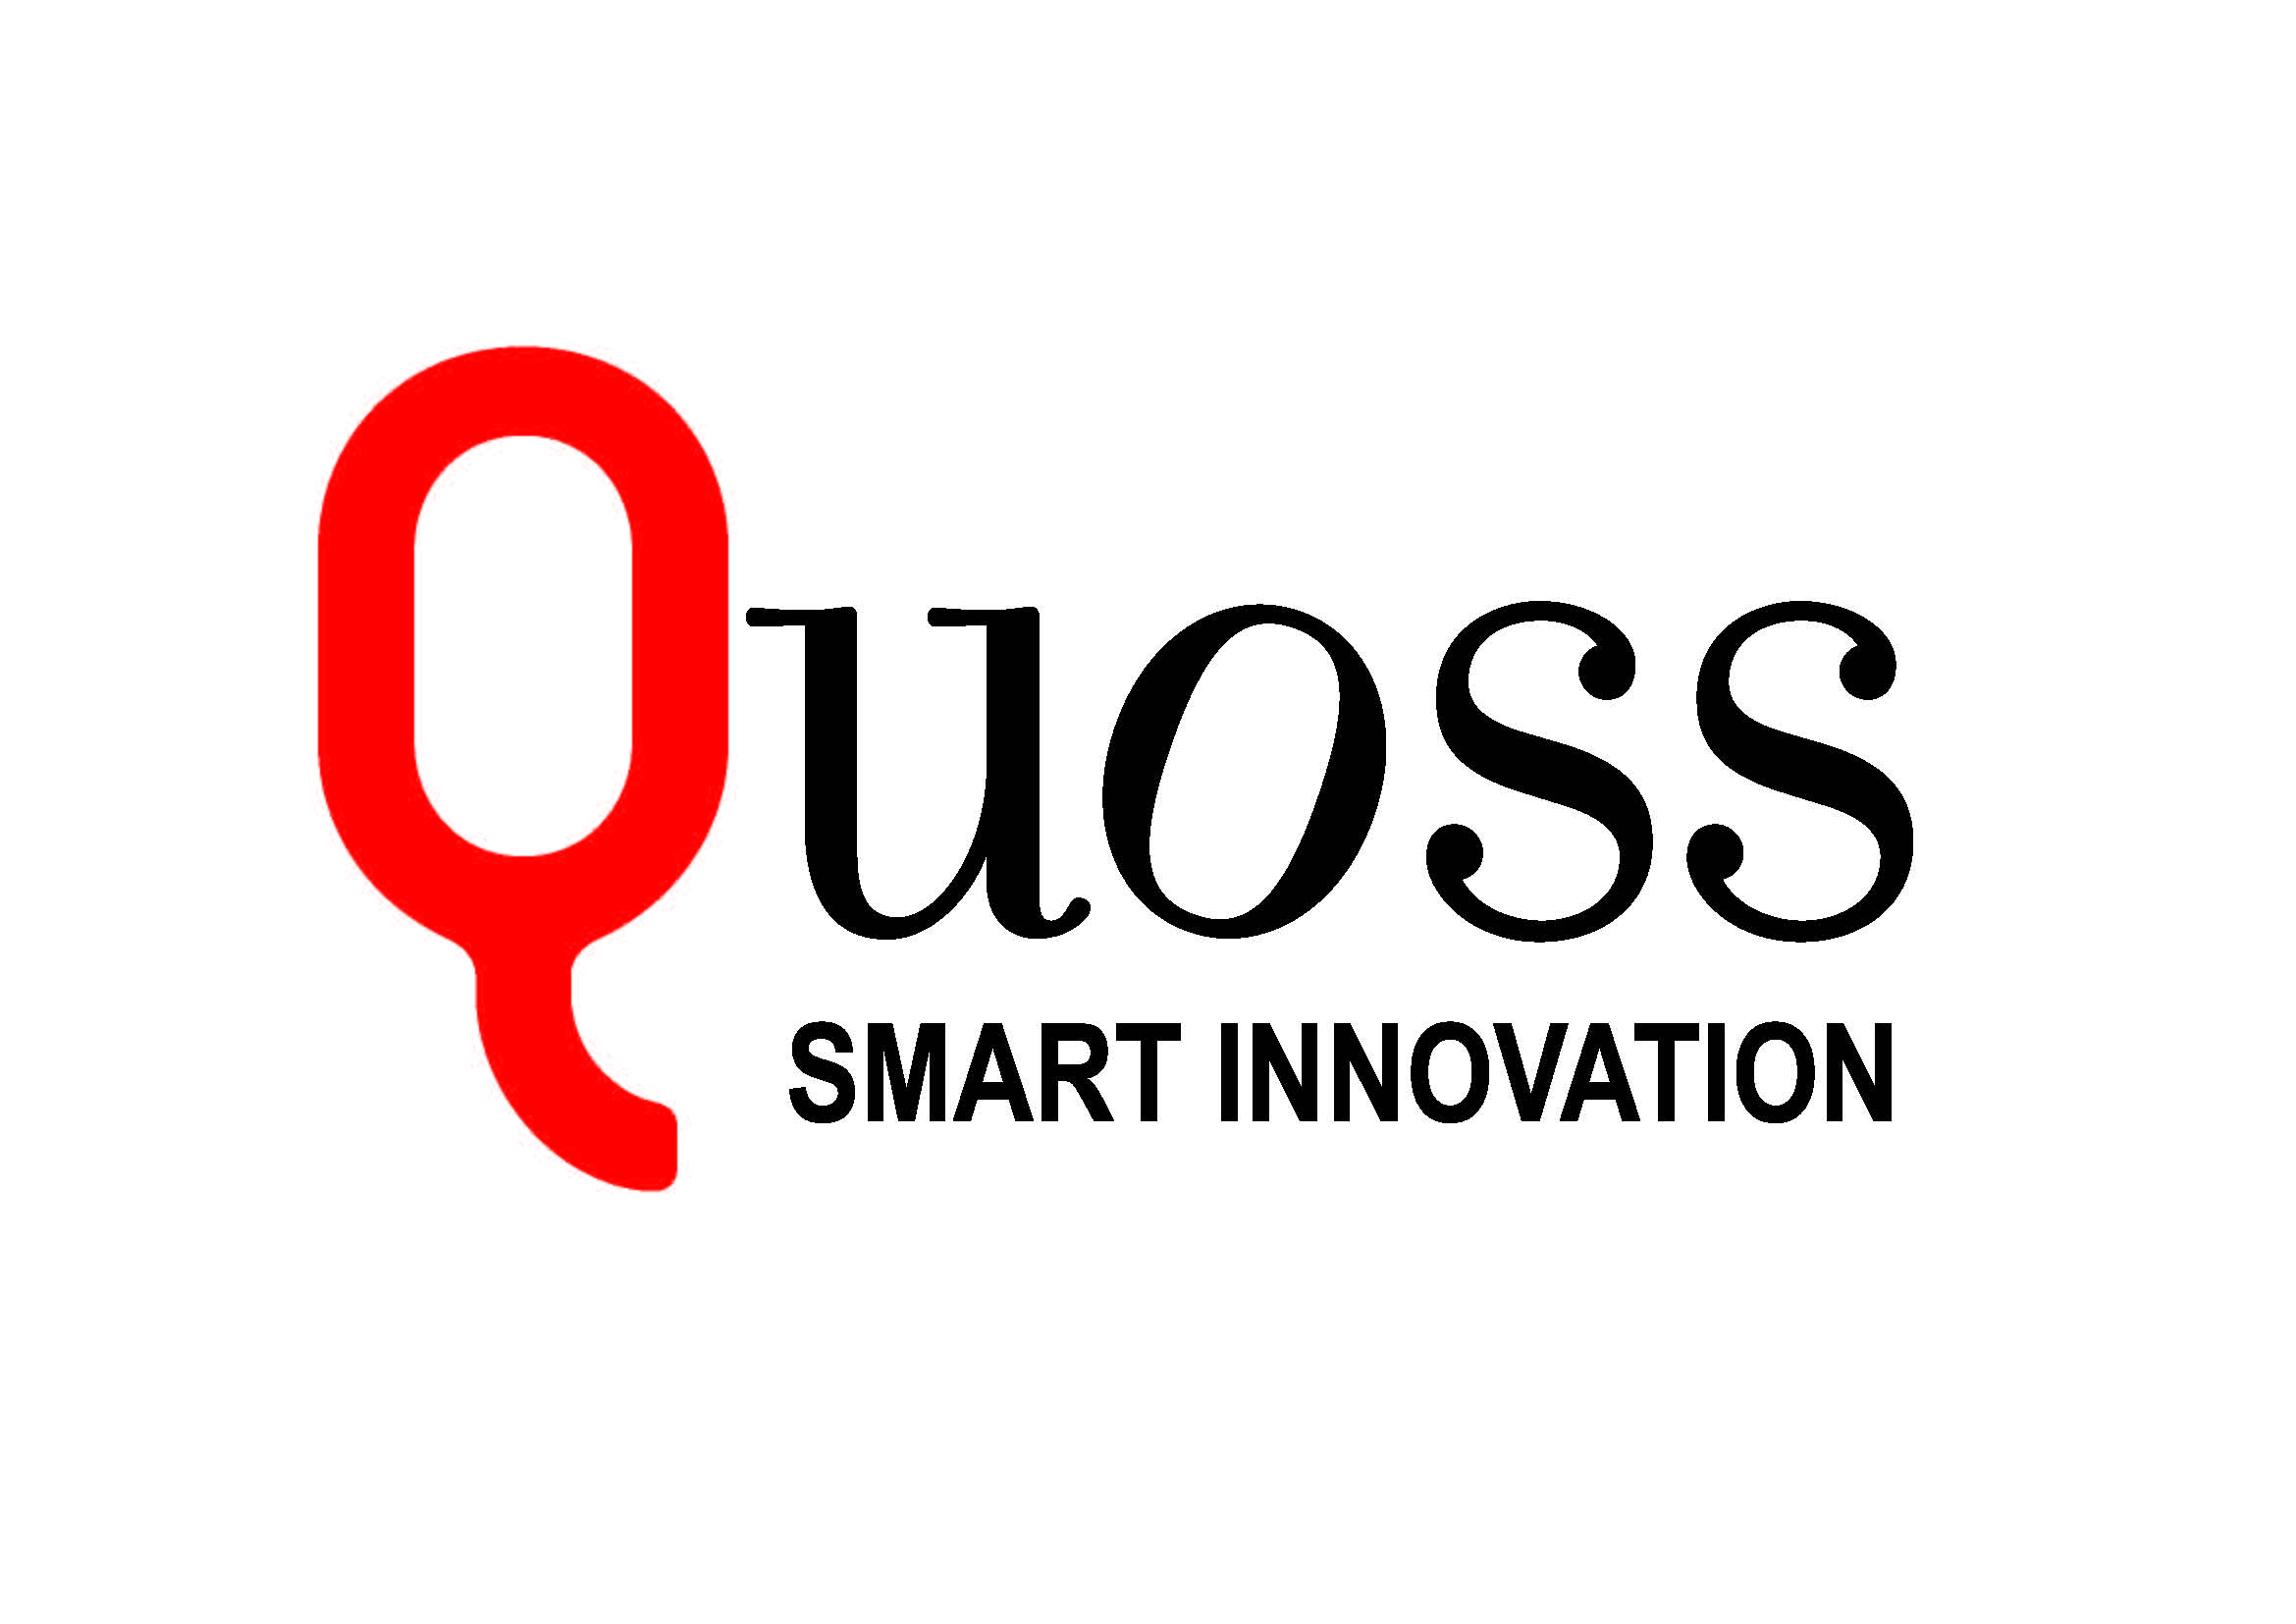 QUOSS Co., Ltd.